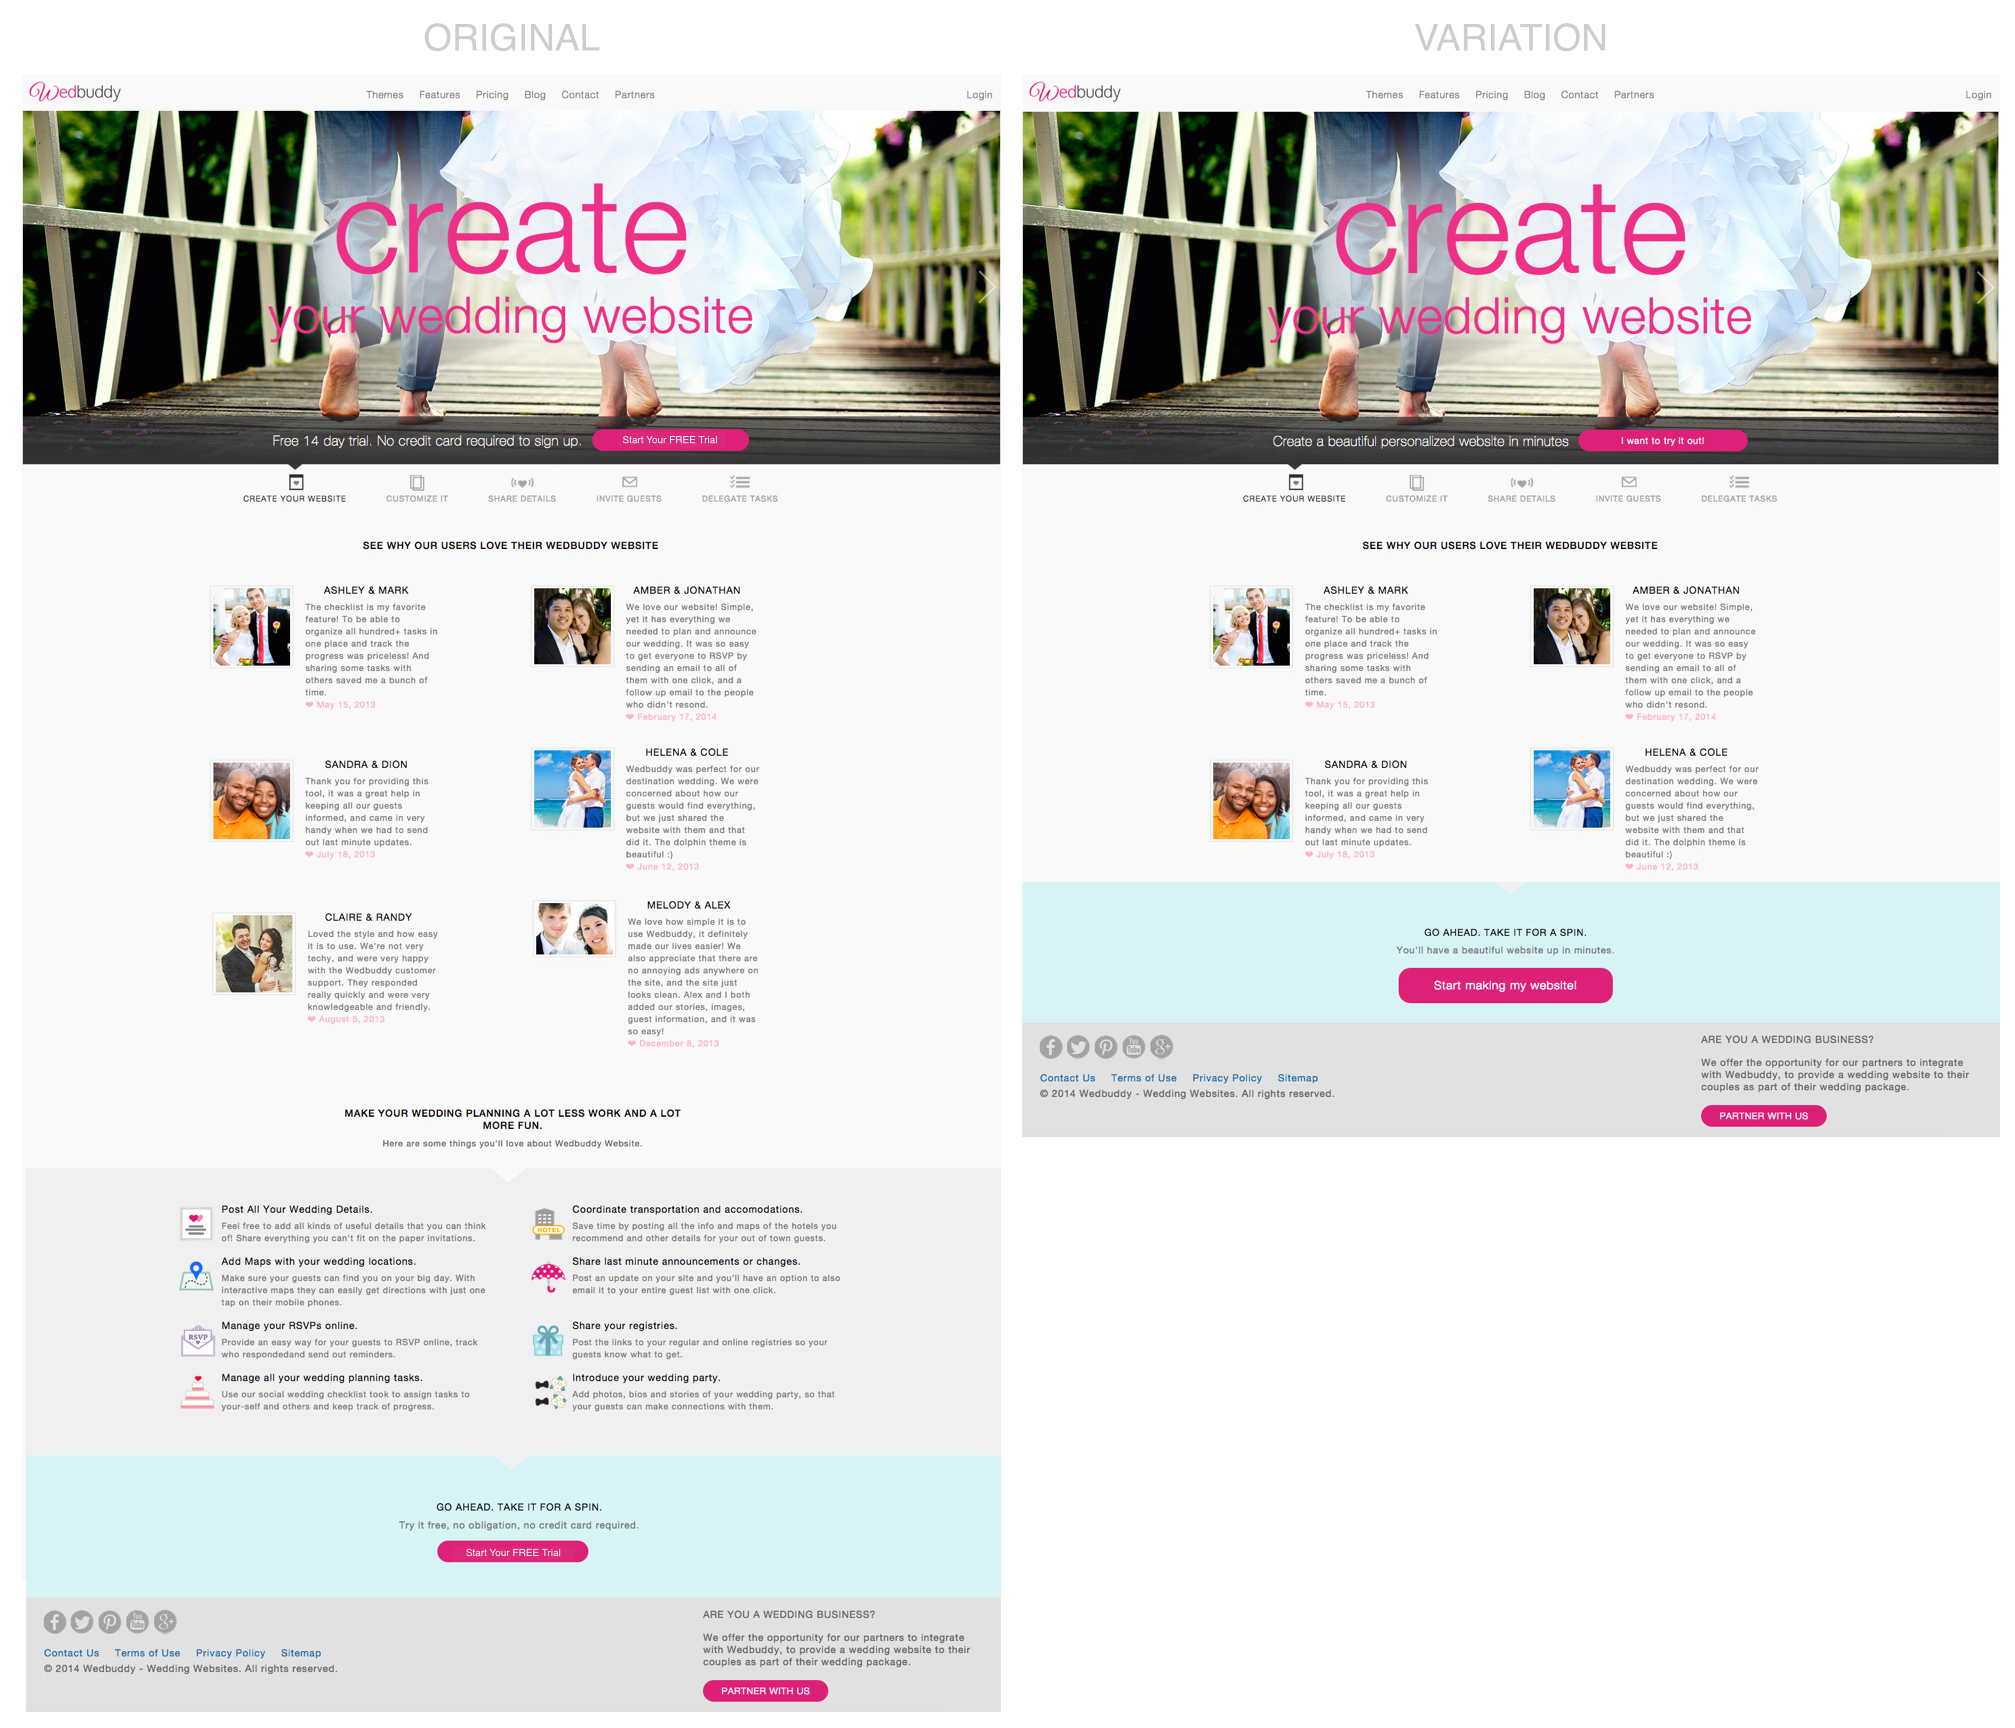 Side-by-side comparison of the original and updated homepage